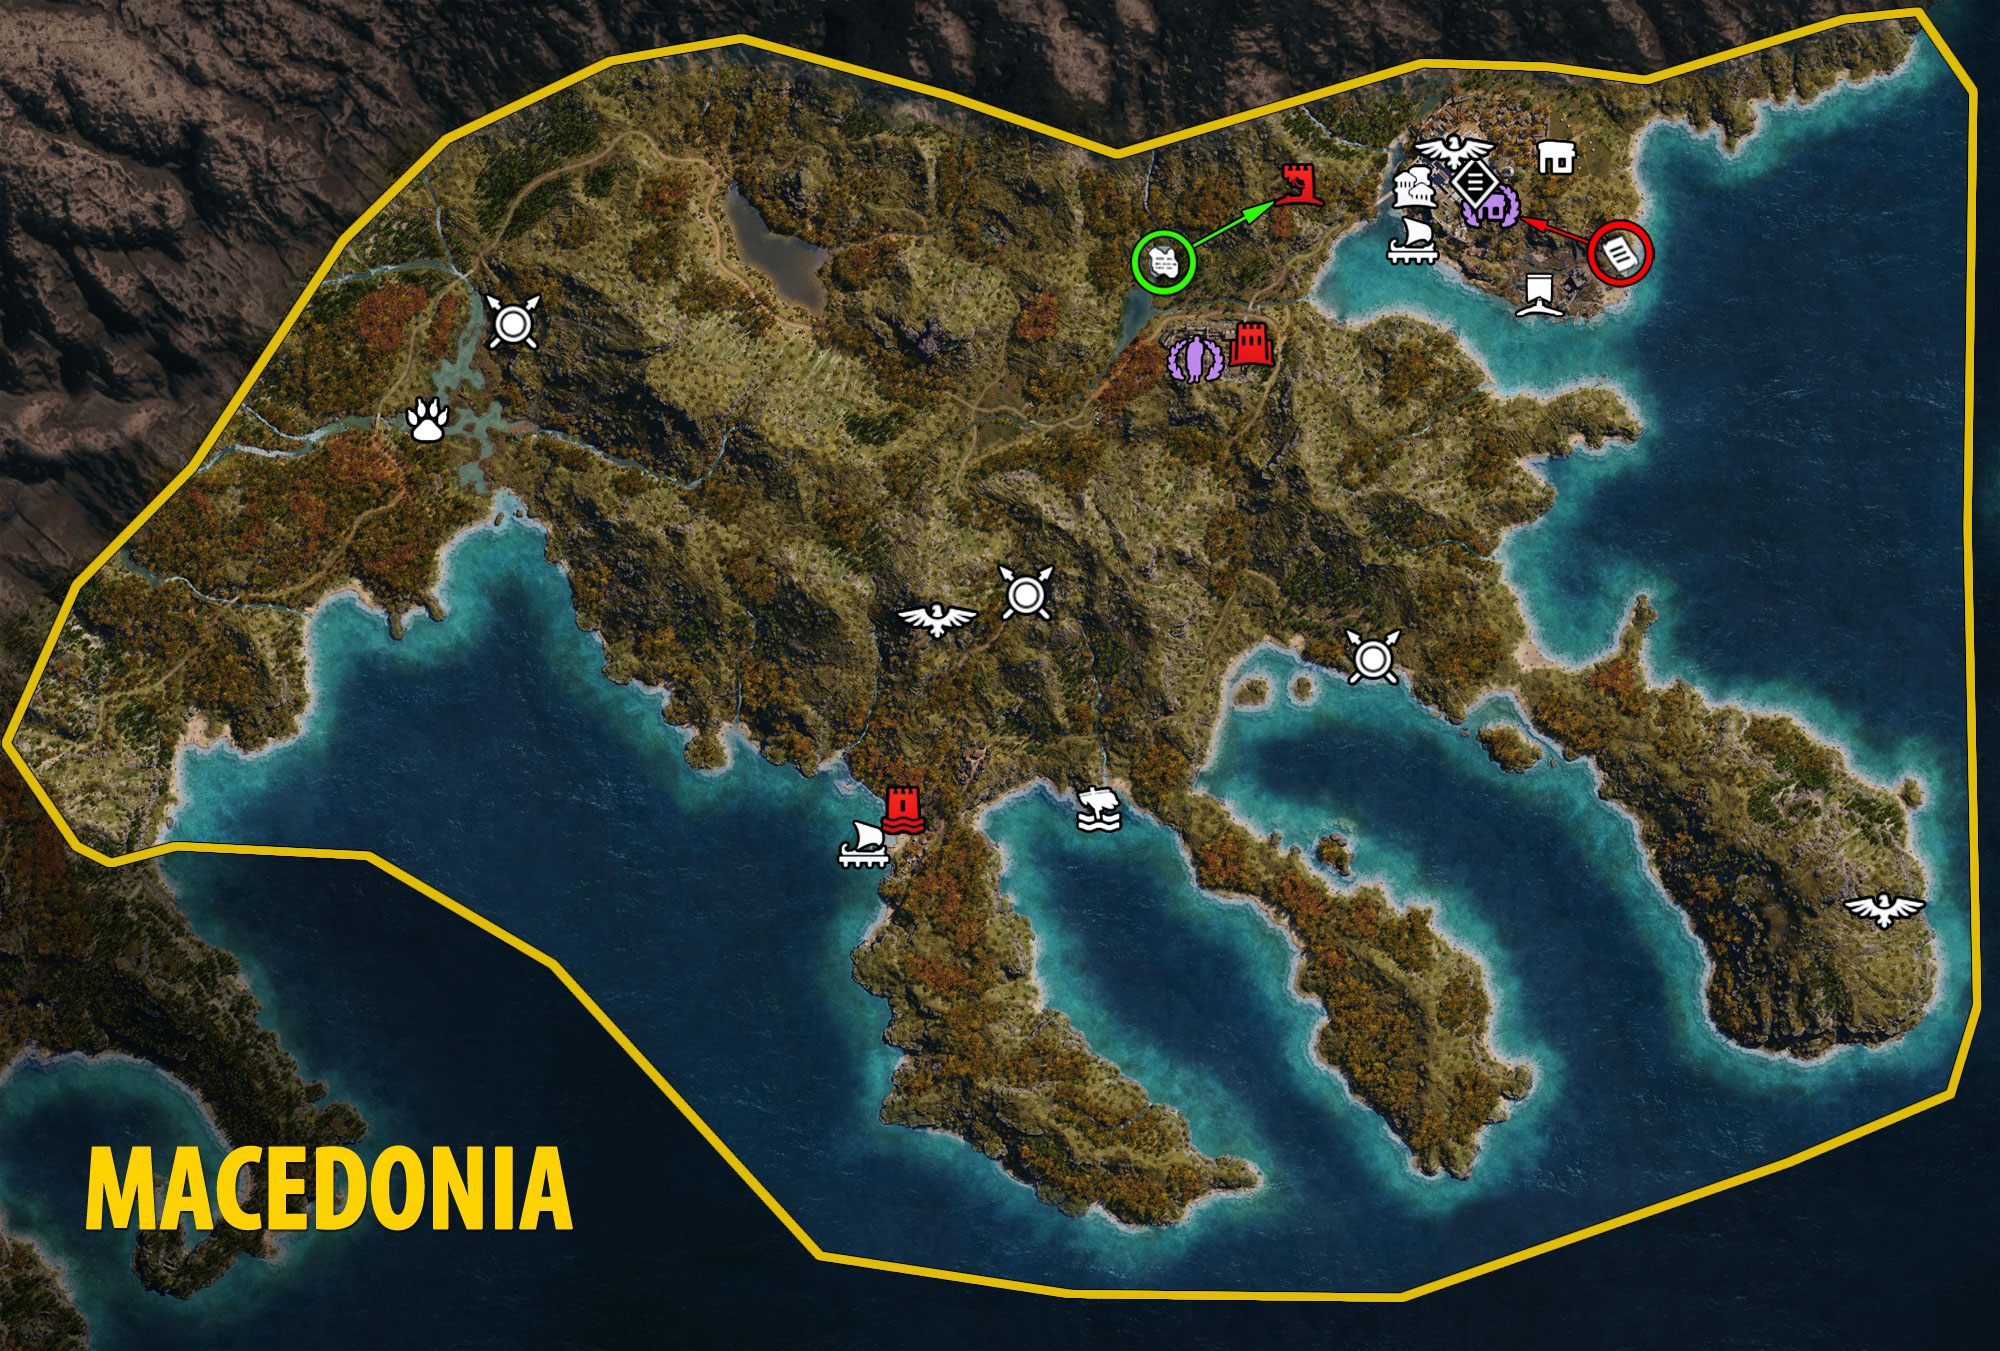 Macedonia - Assassin's Creed Odyssey Map